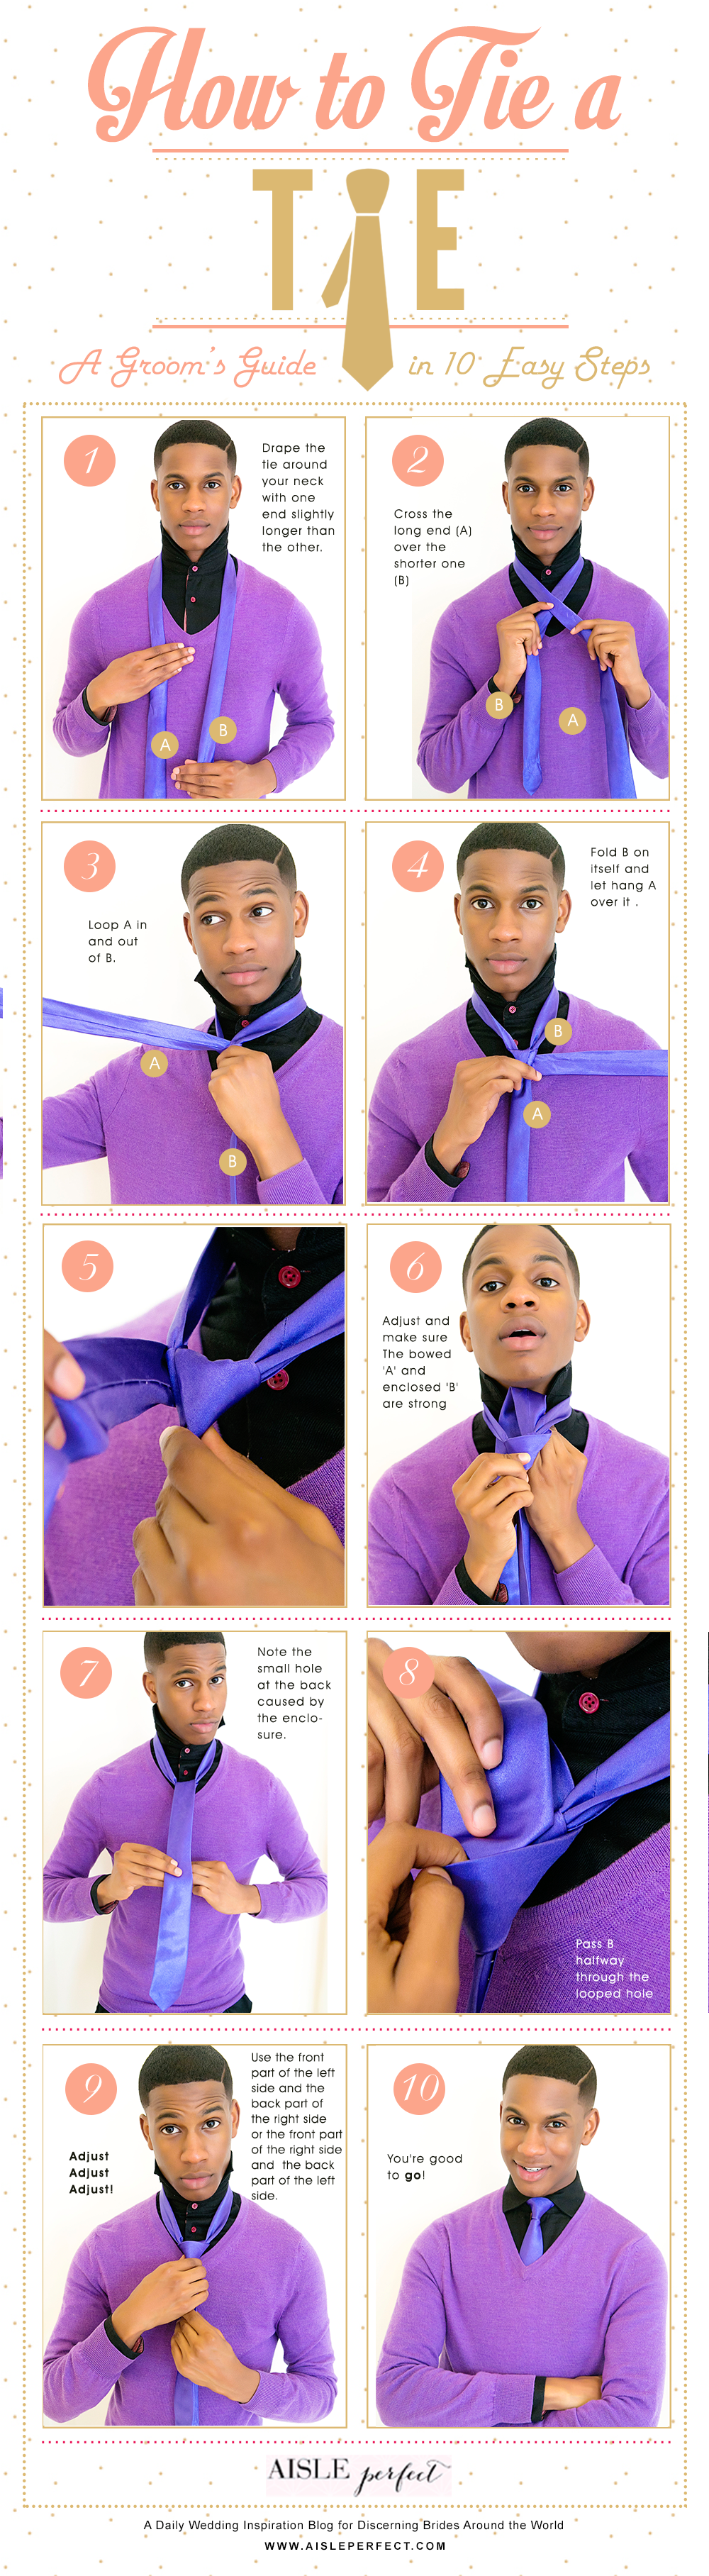 How To Tie a Tie Tutorial- Aisle Perfect